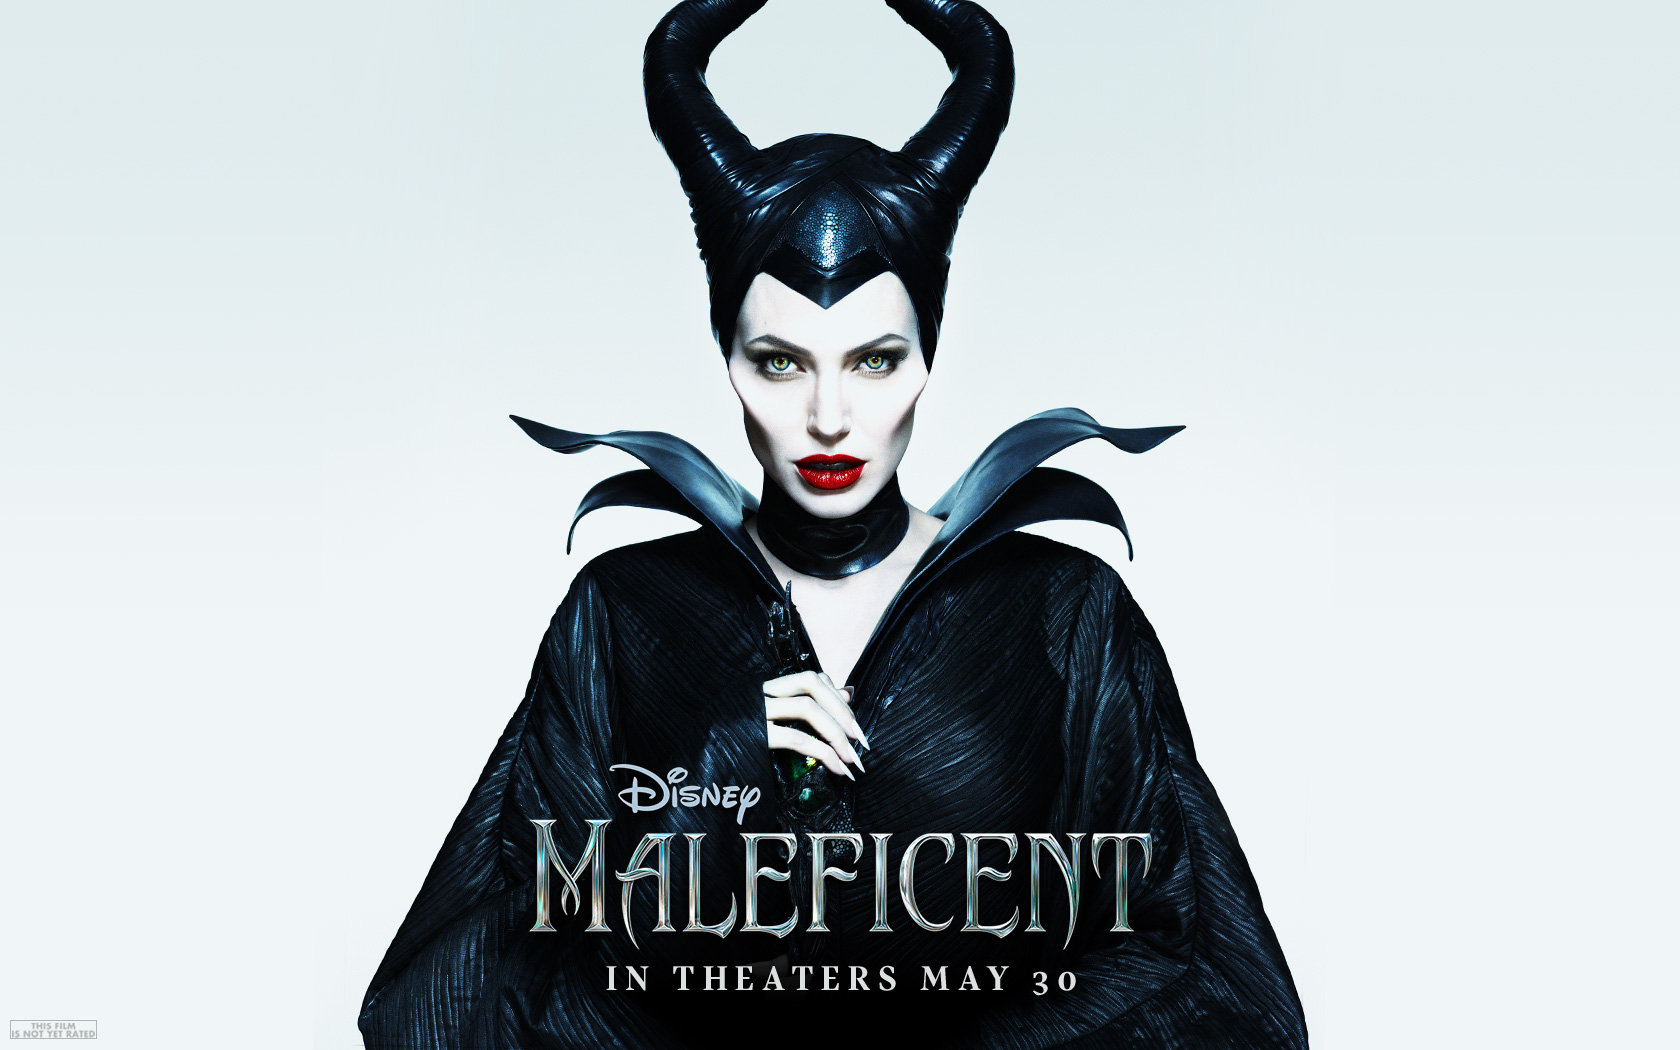 more wallpapers Maleficent here